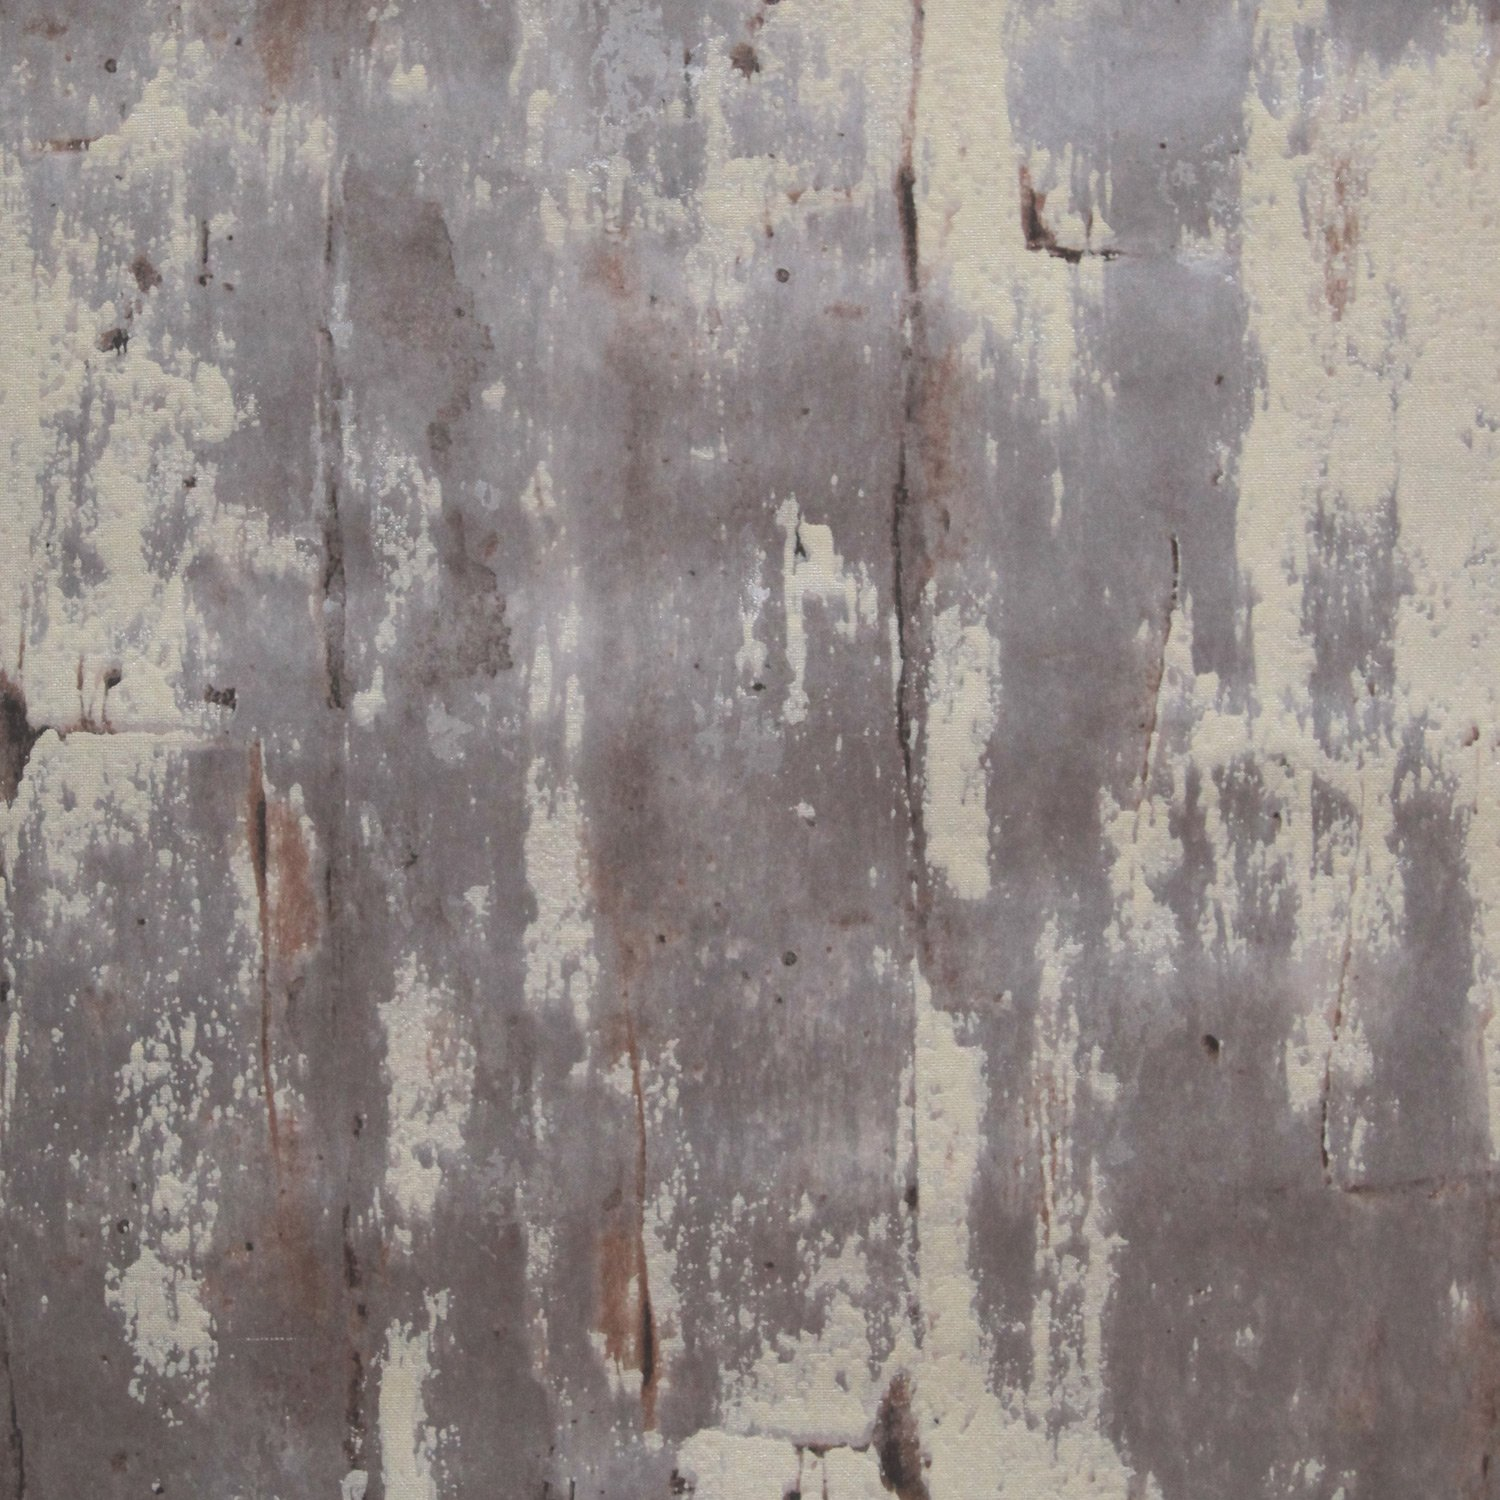 3D Concrete Wallpaper for Living Room Background Bedroom, Textured Rustic Gray Cement Look Wallpaper (Unpasted) Roll, 20.8 inch x 32.8 Feet, 1 Roll Pack